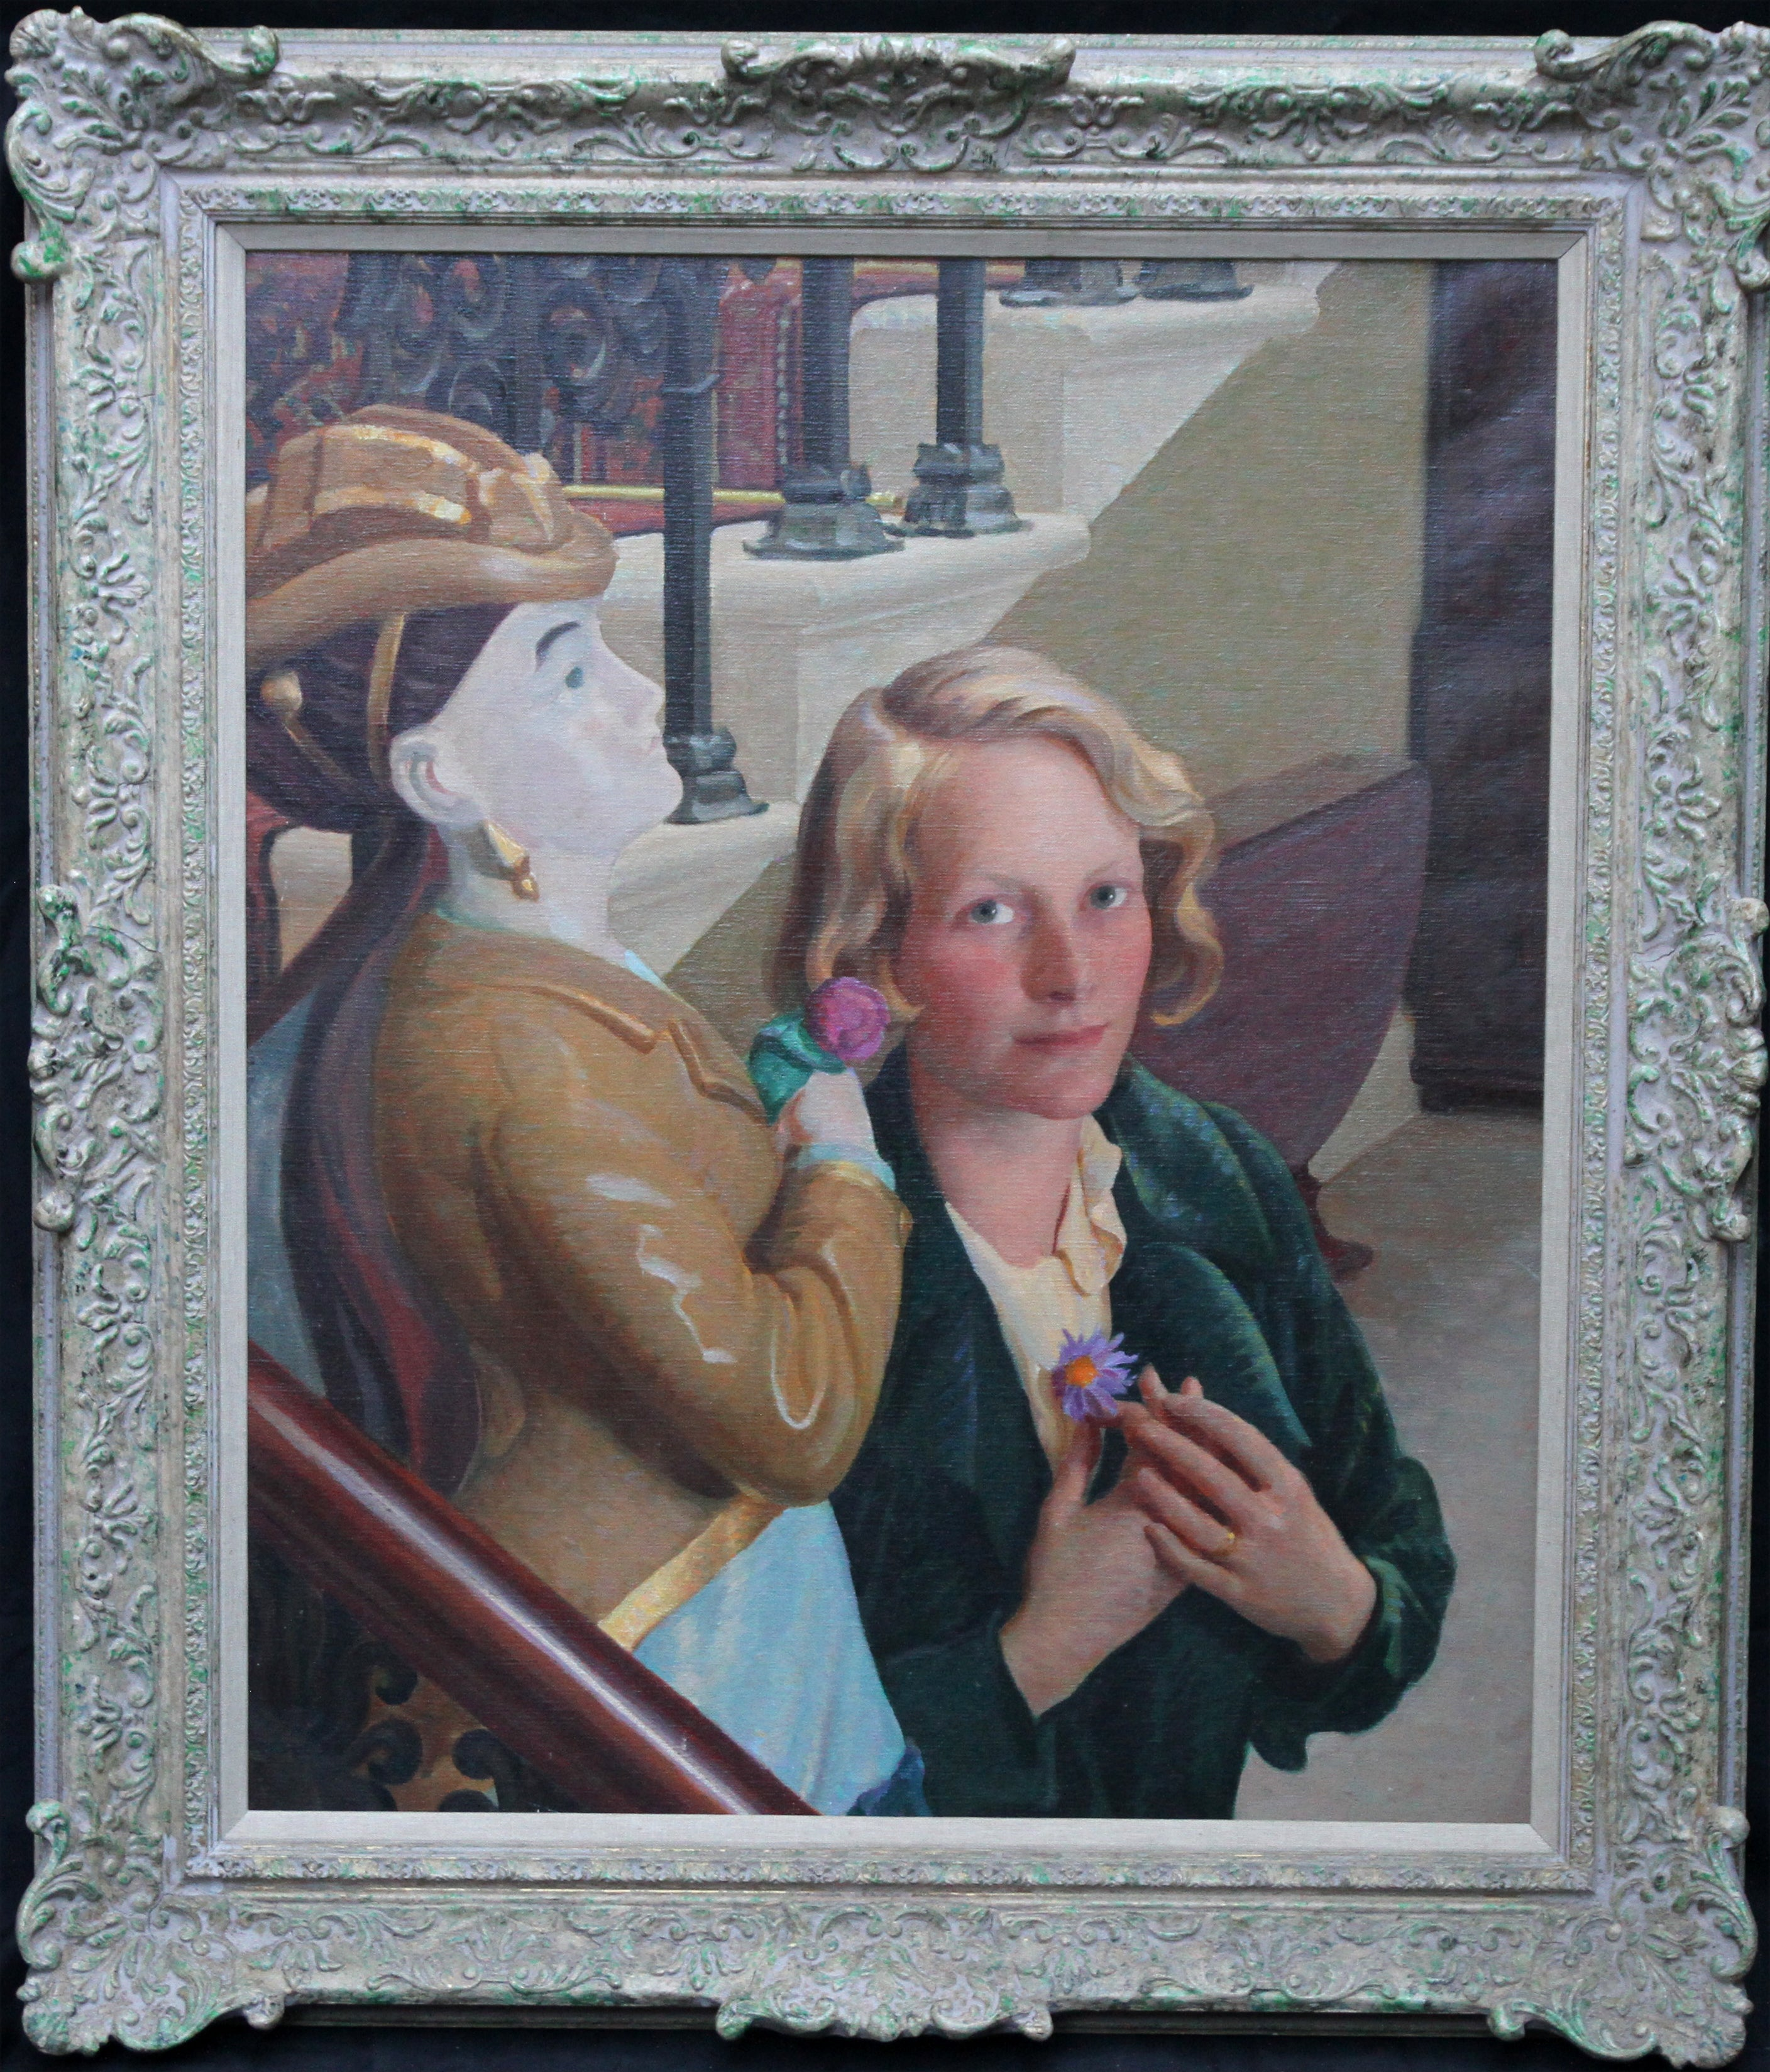 Countess of Cranbrook with Statue - Scottish 30's Art Deco portrait oil painting